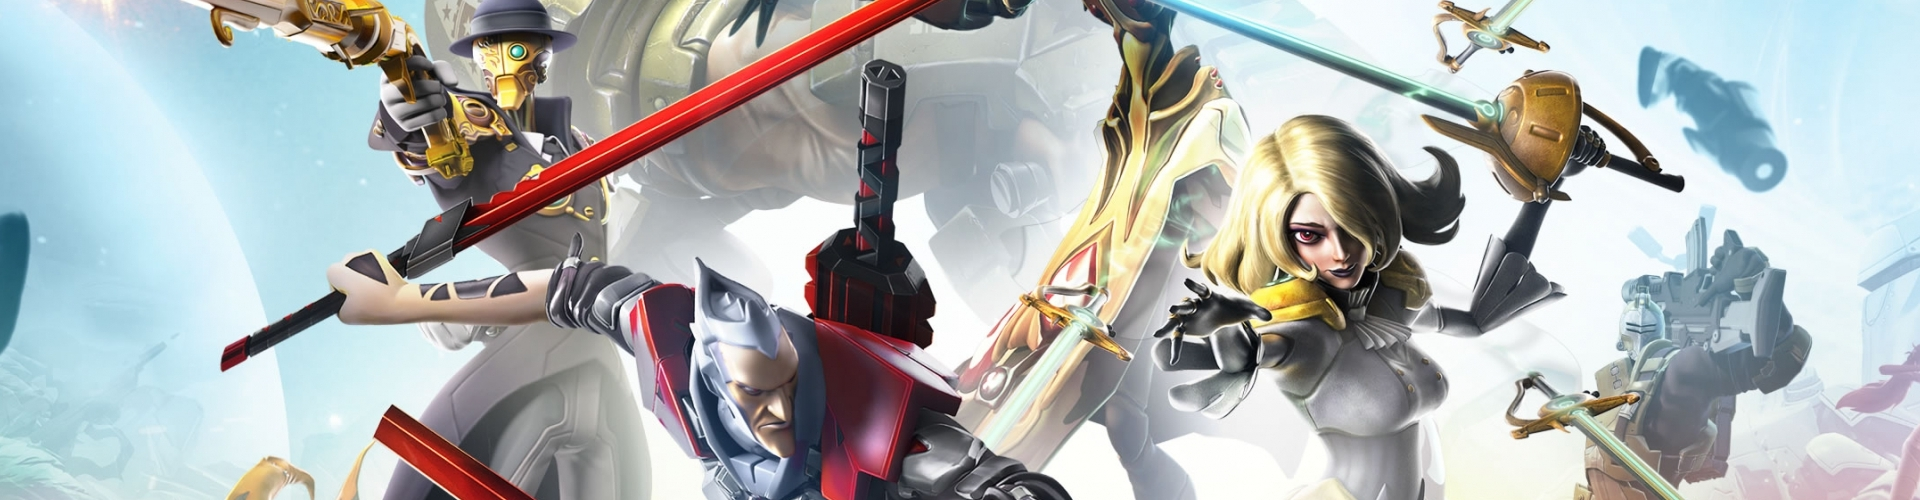 Battleborn: Preview zum MOBA-Shooter mit Video